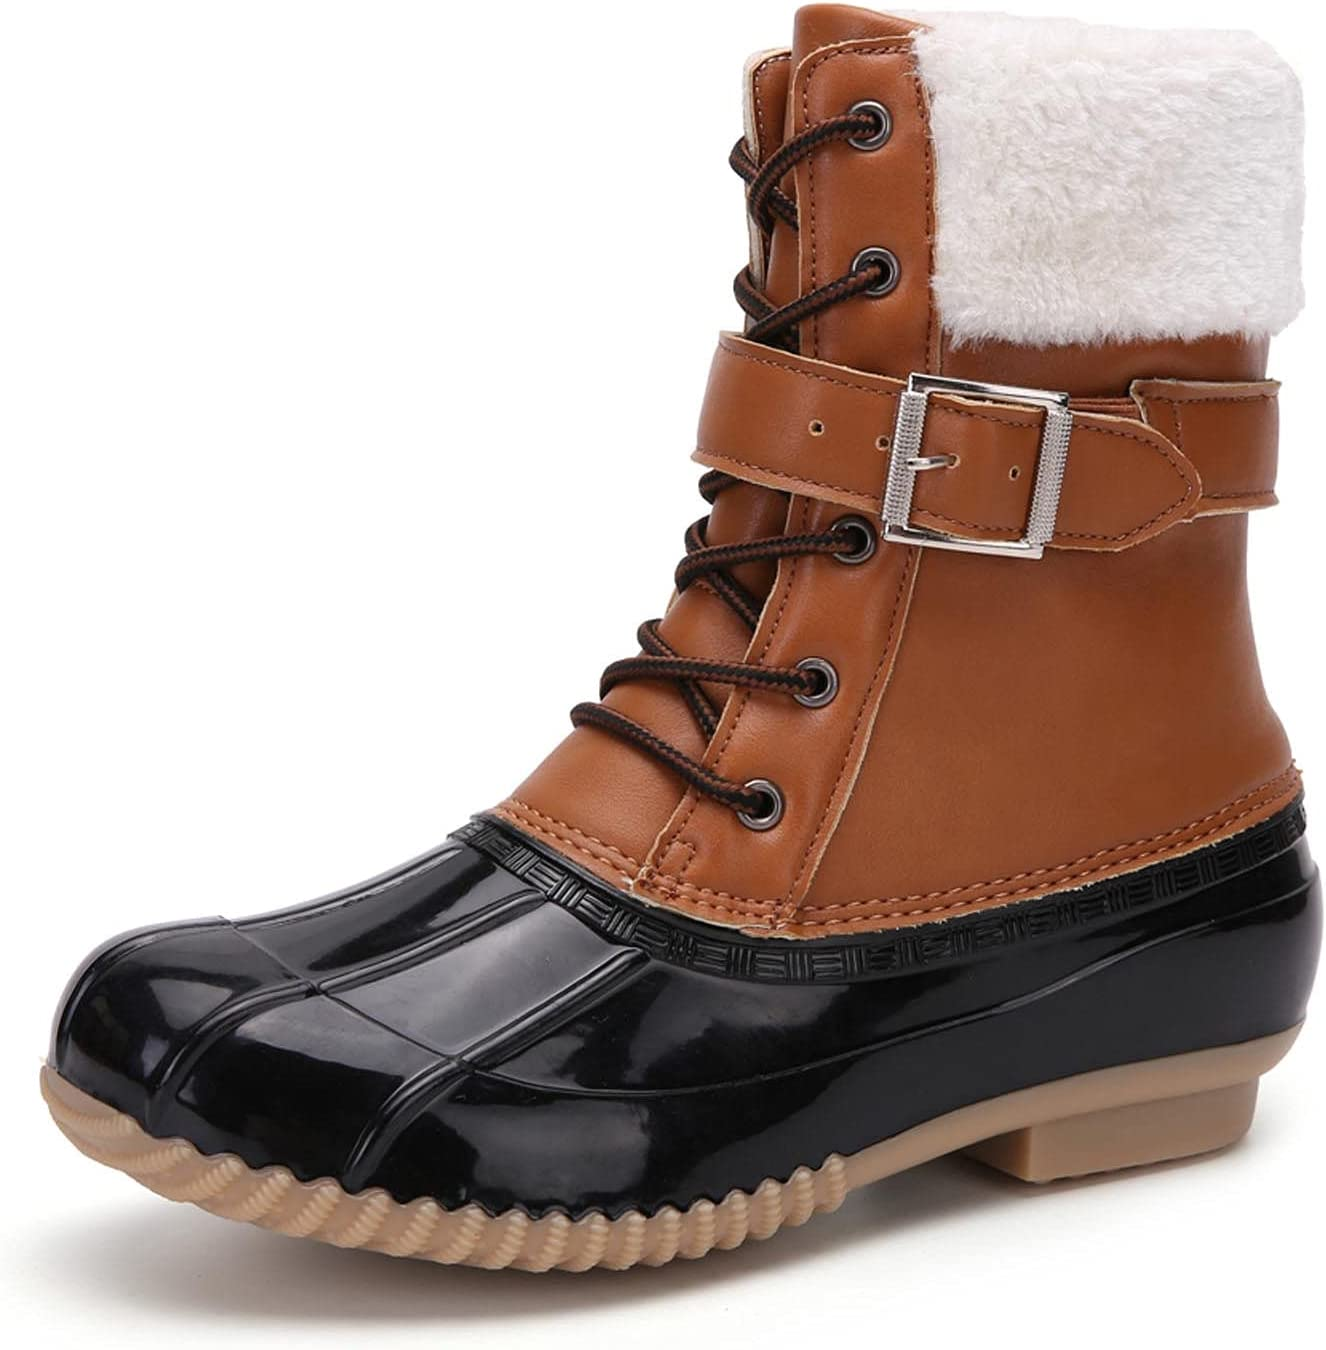 Womens Winter Duck Boots Waterproof Cold Weather Snow Boots, Duc